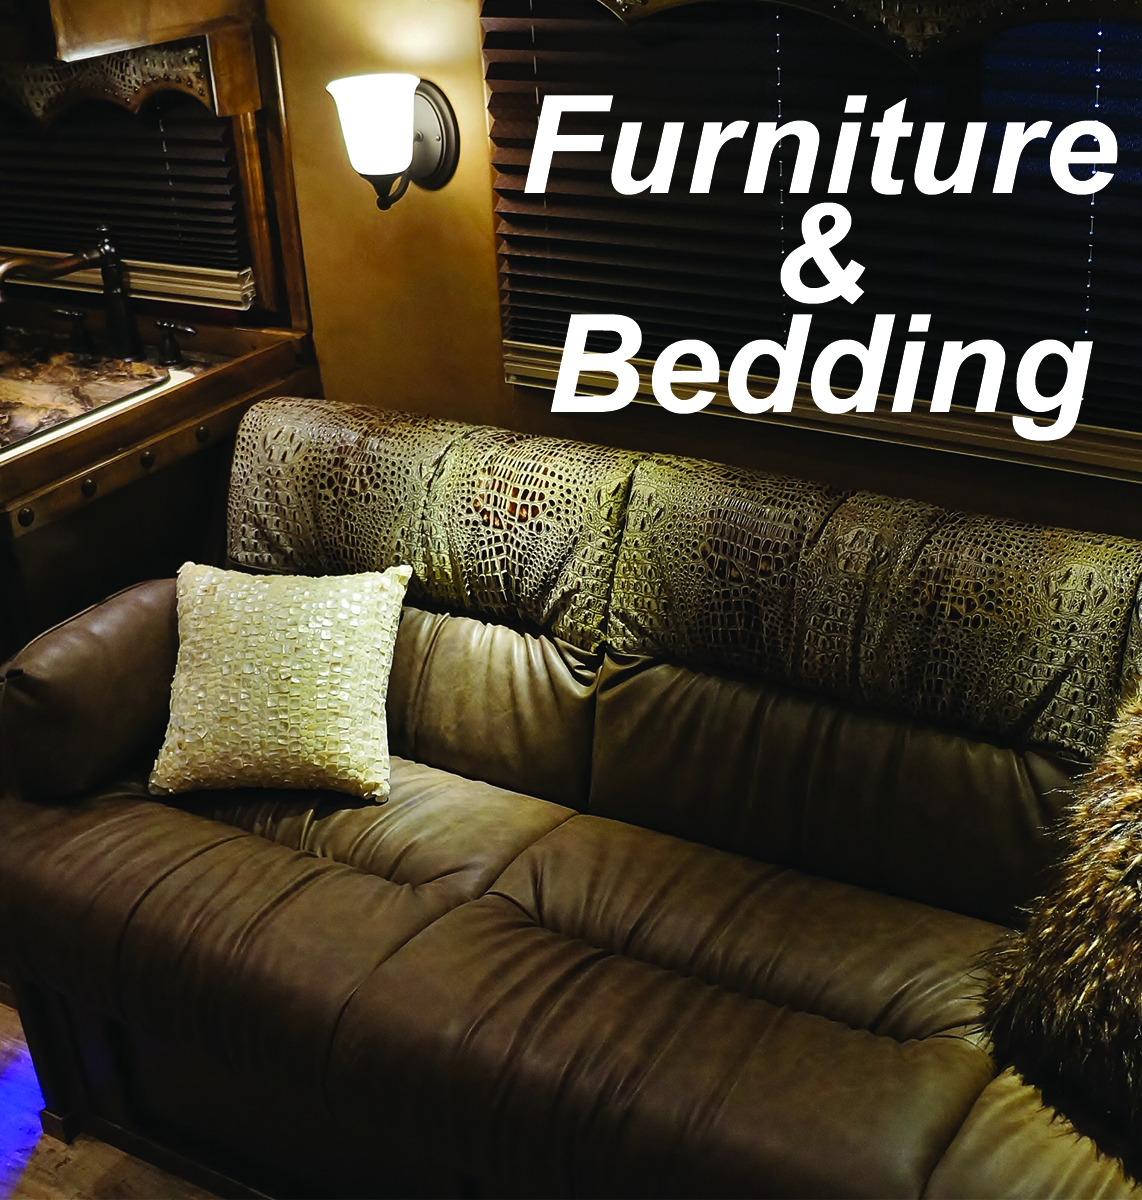 Furniture and Bedding.jpg